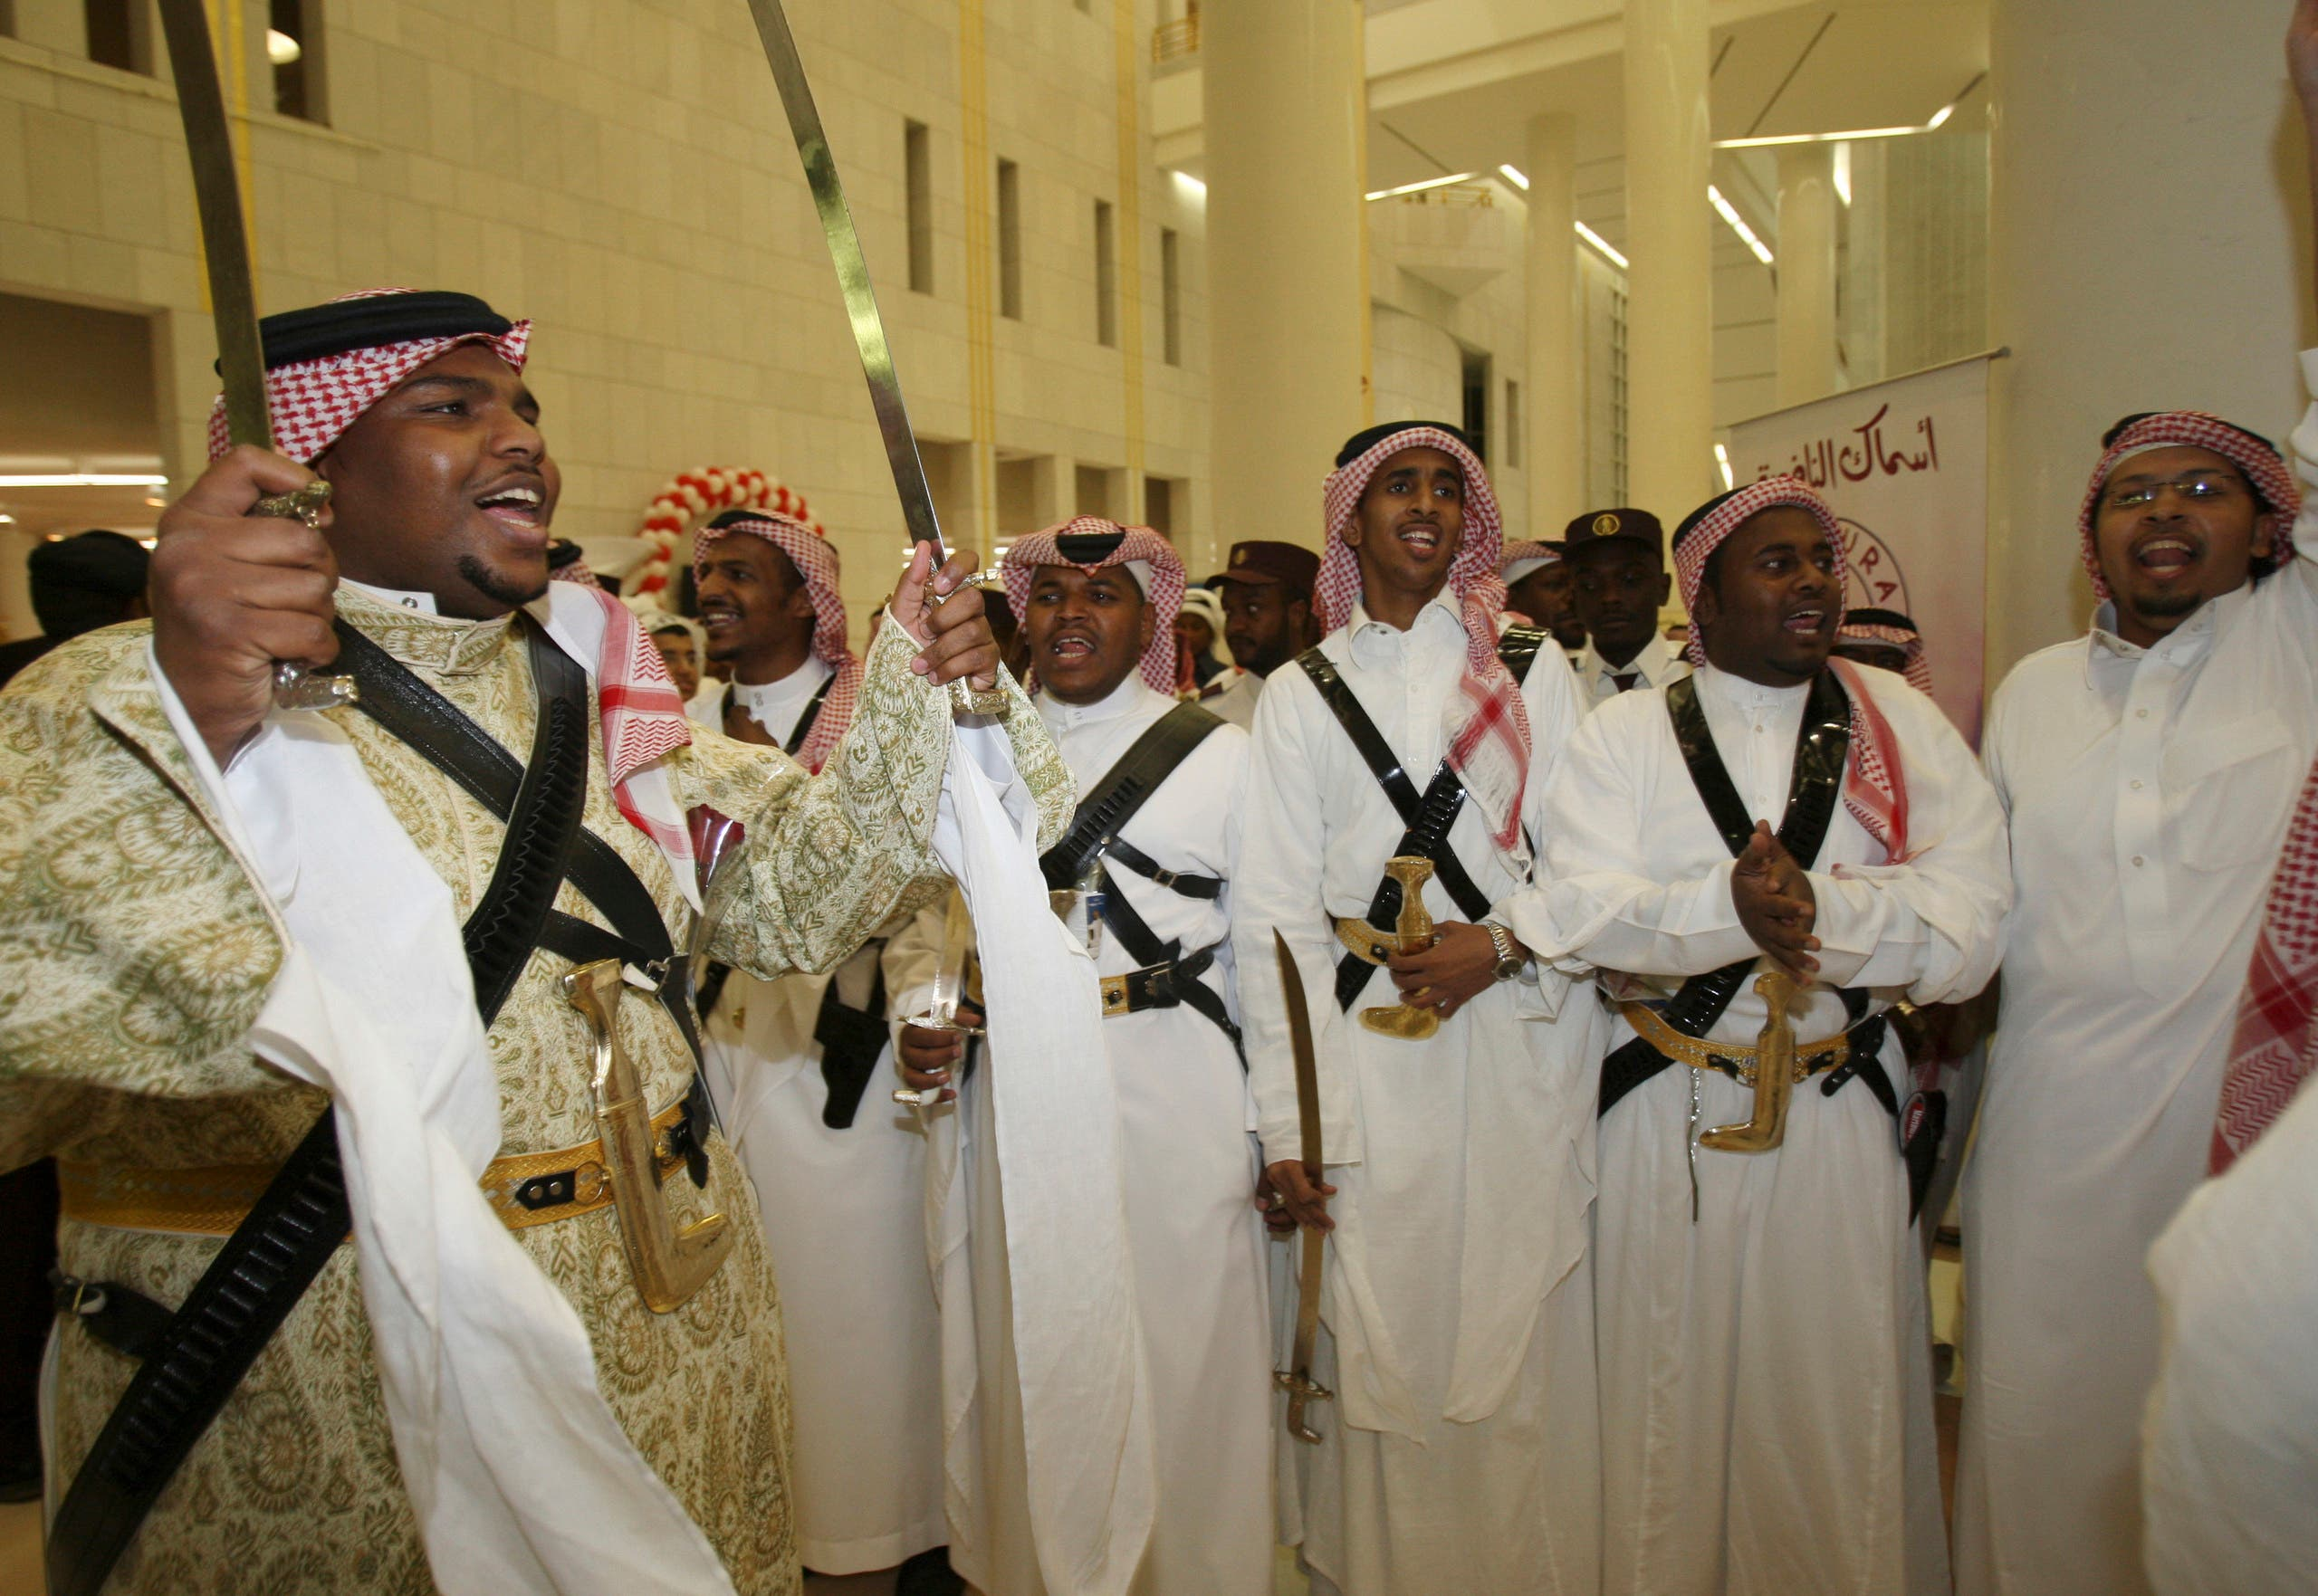 People sing celebration songs during a mass wedding ceremony in Riyadh, Saudi Arabia, June 24, 2008. (File photo: Reuters)